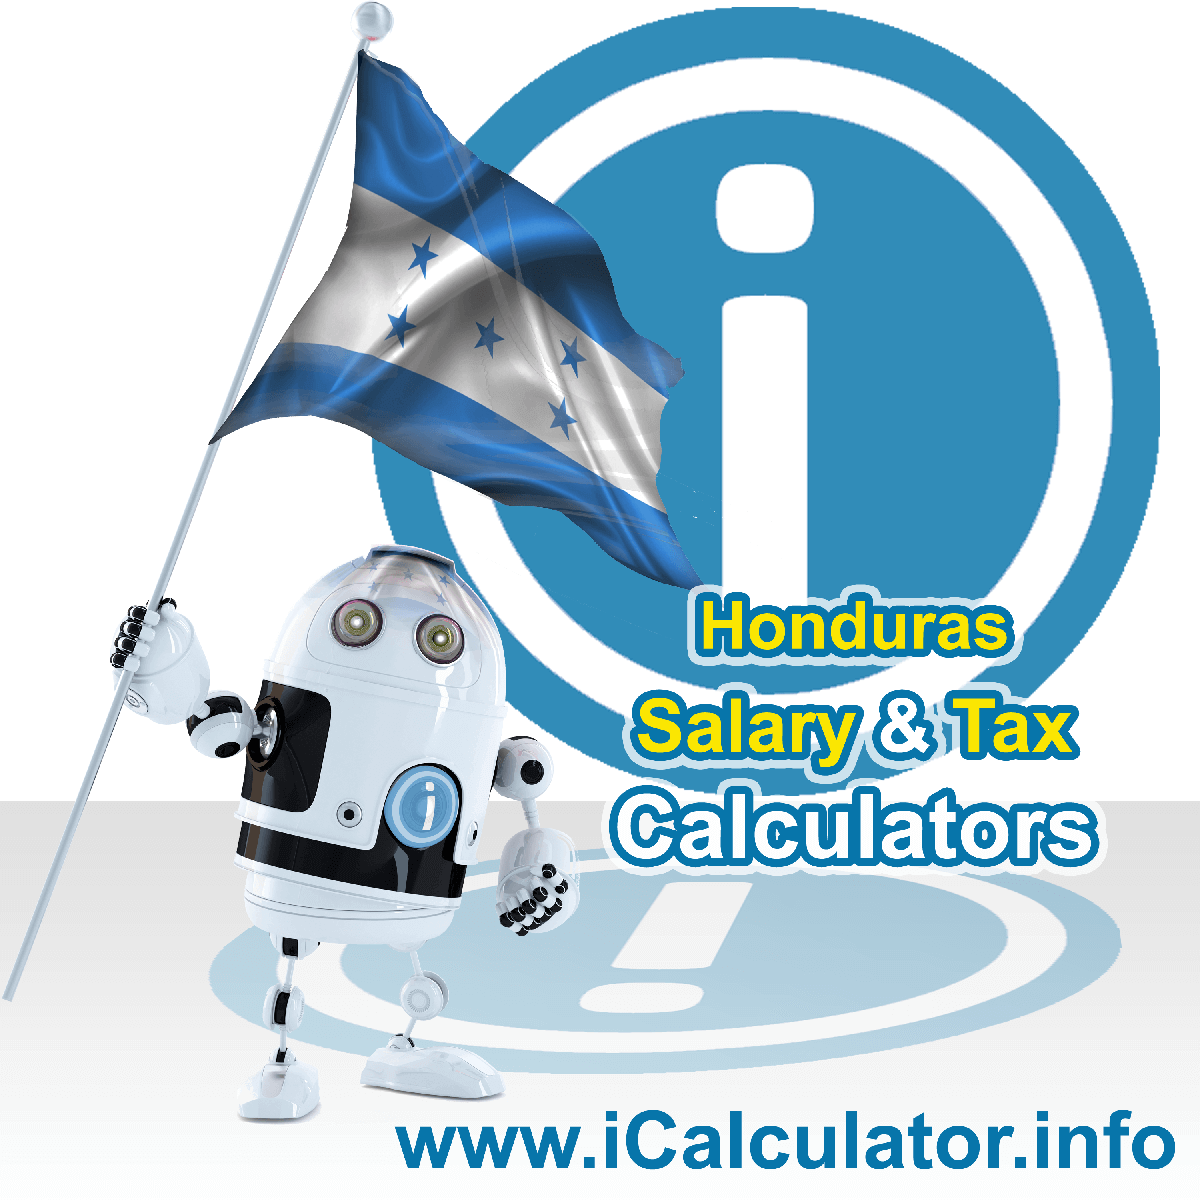 Honduras Wage Calculator. This image shows the Honduras flag and information relating to the tax formula for the Honduras Tax Calculator